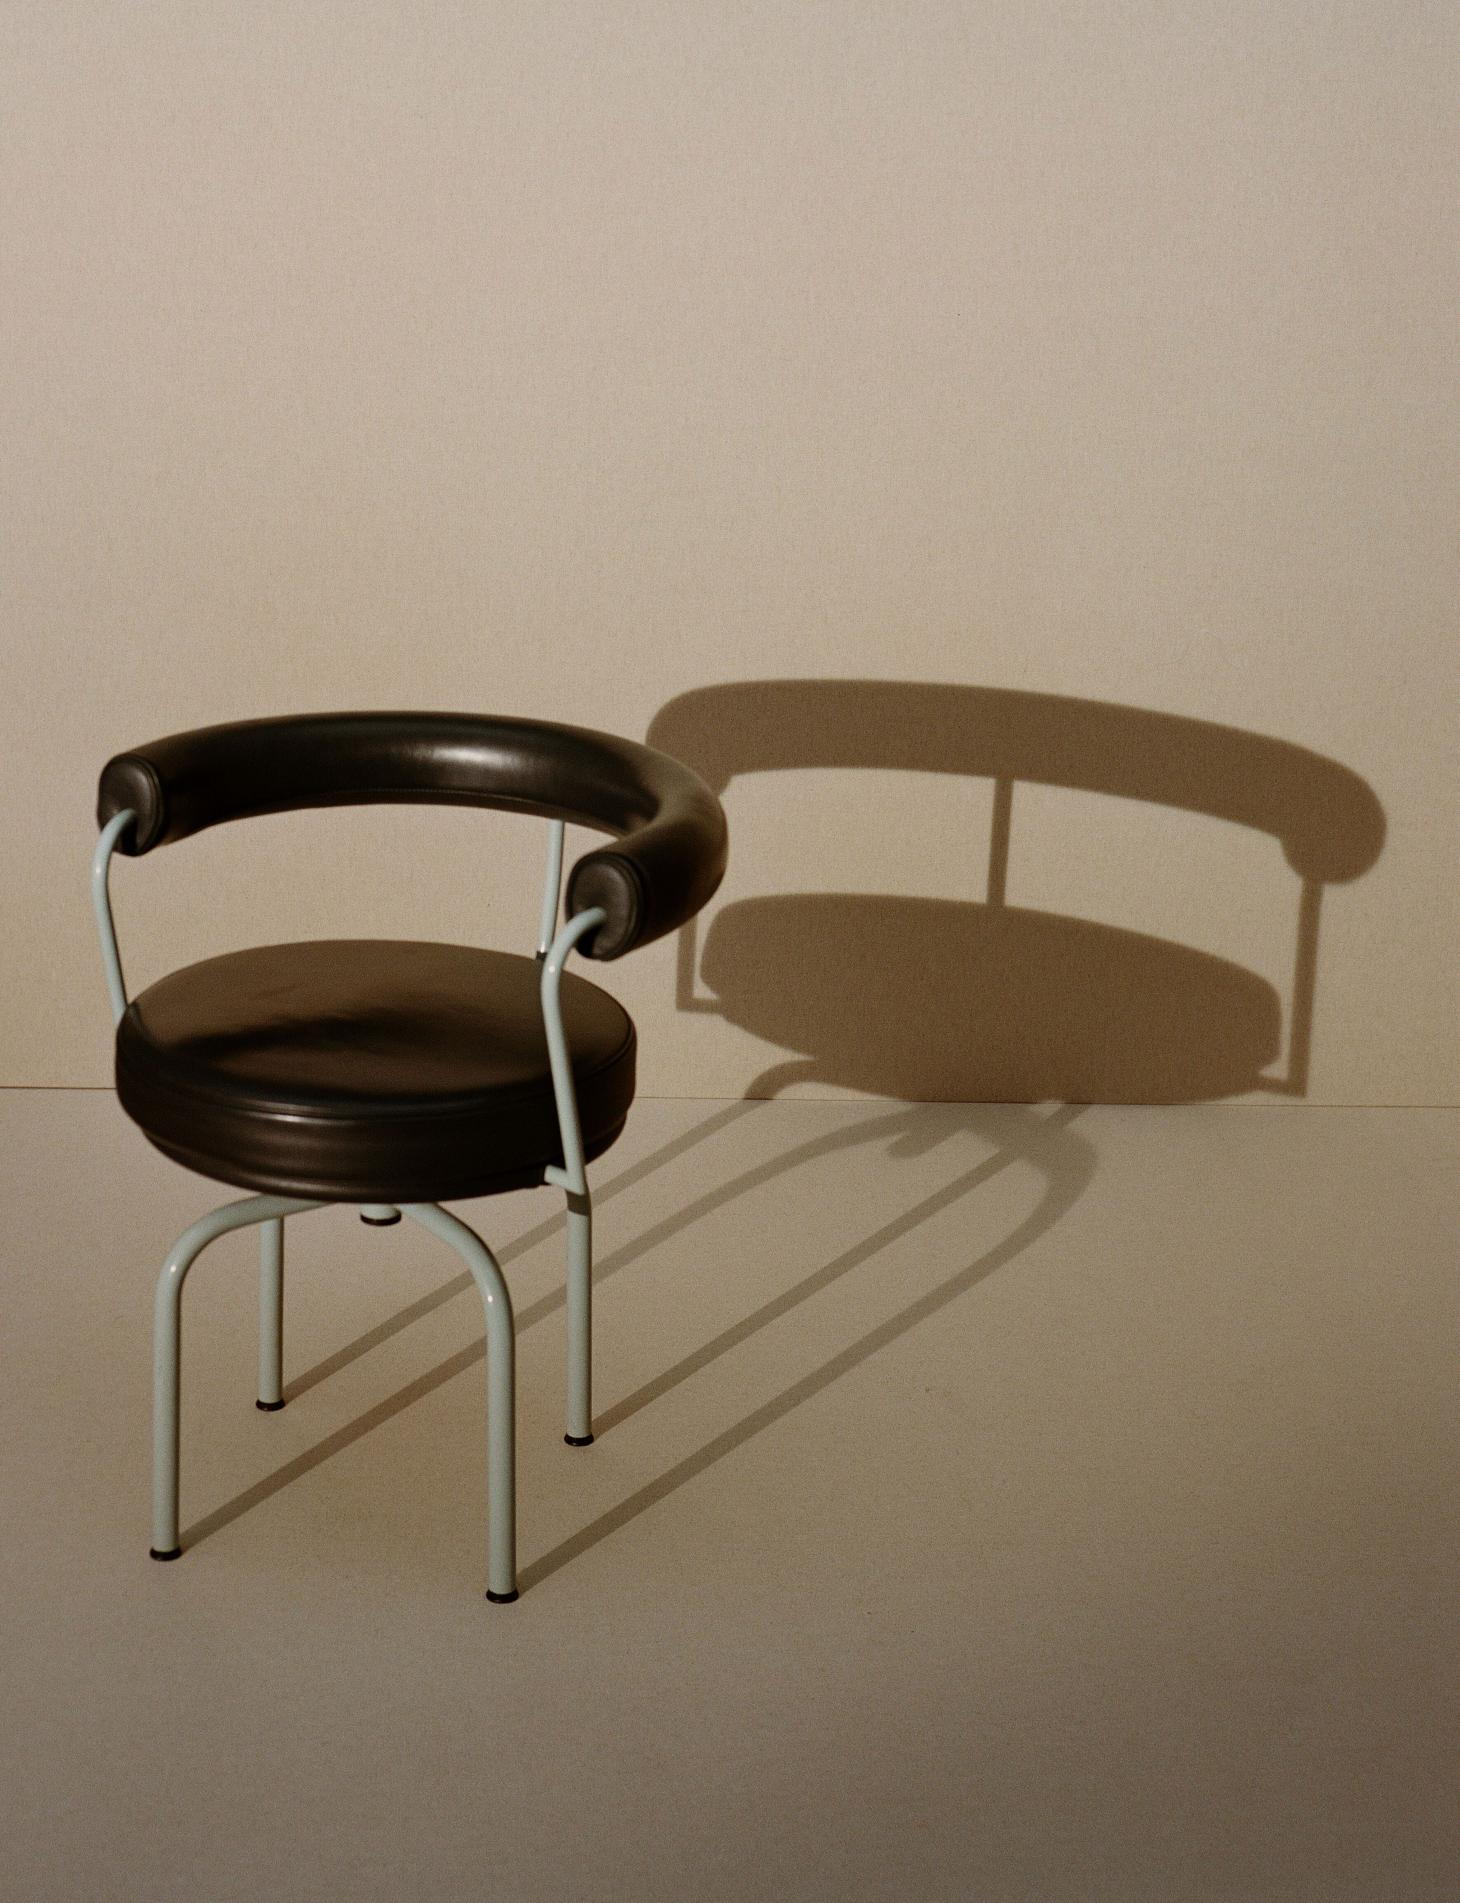 Julien T Hamon photograph of black LC7 Armchair designed by Charlotte Perriand